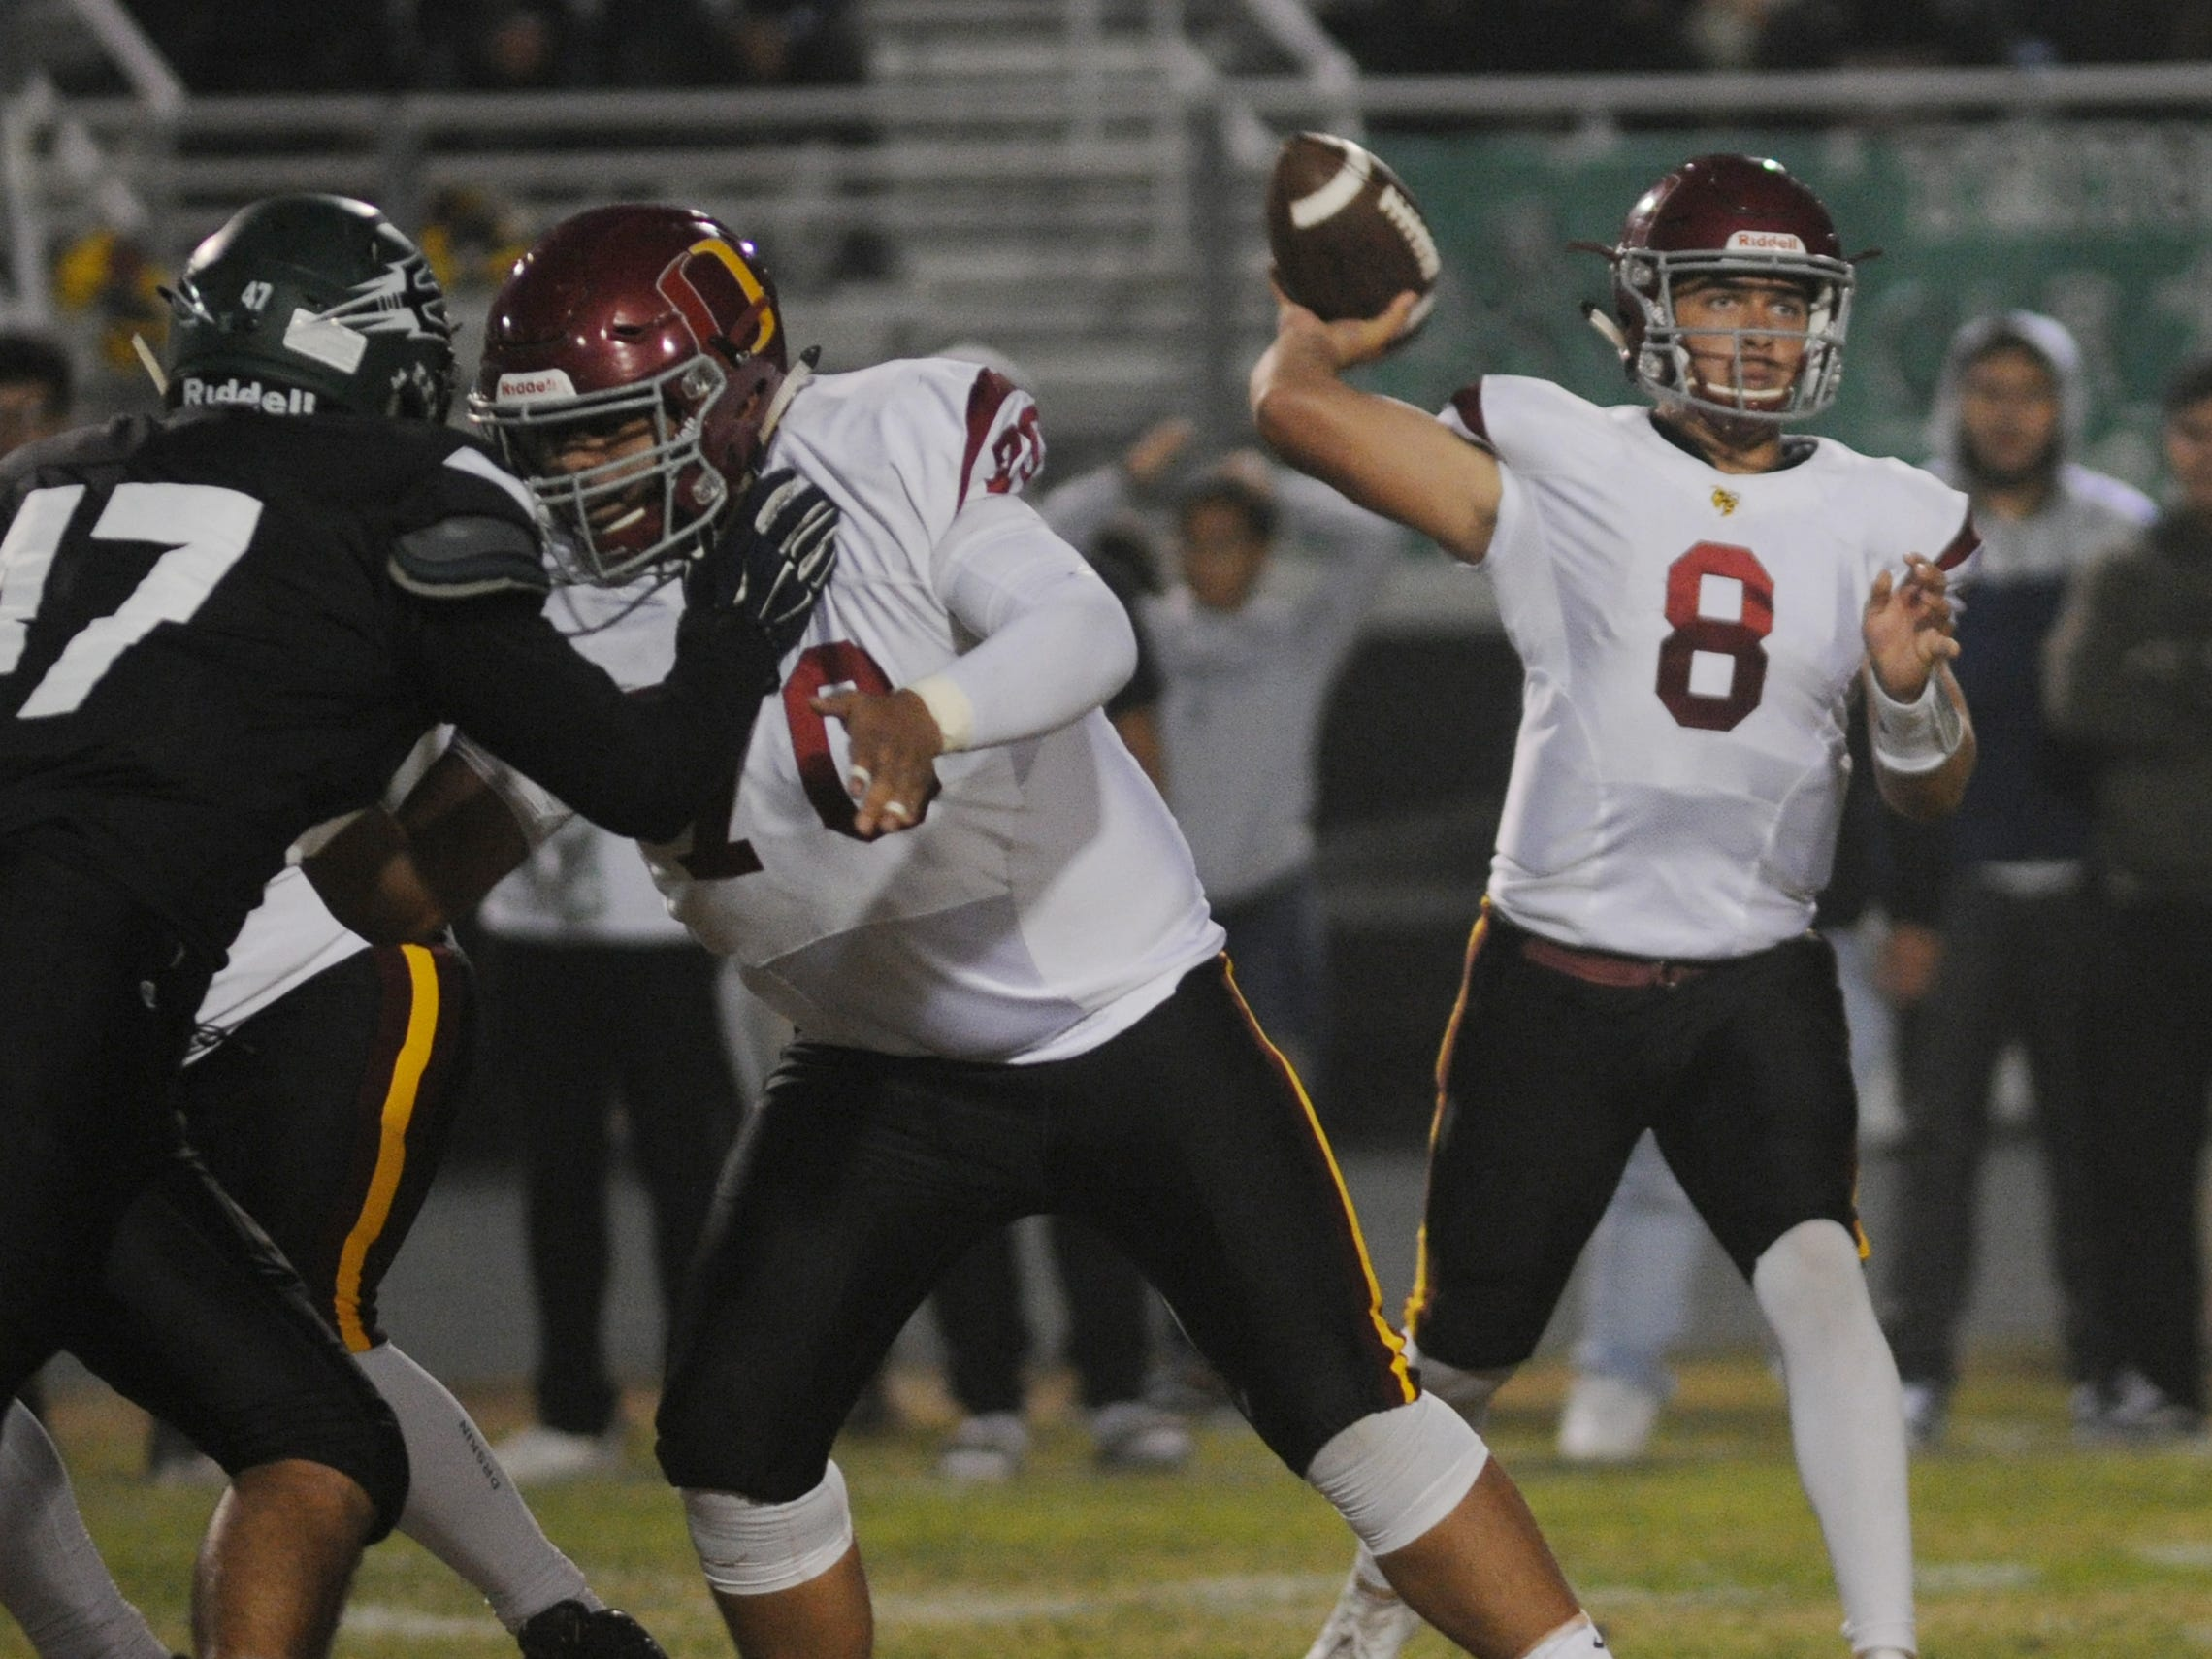 Oxnard quarterback Vincent Walea throws a pass during the Yellowjackets' 24-14 win at Pacifica on Friday night.